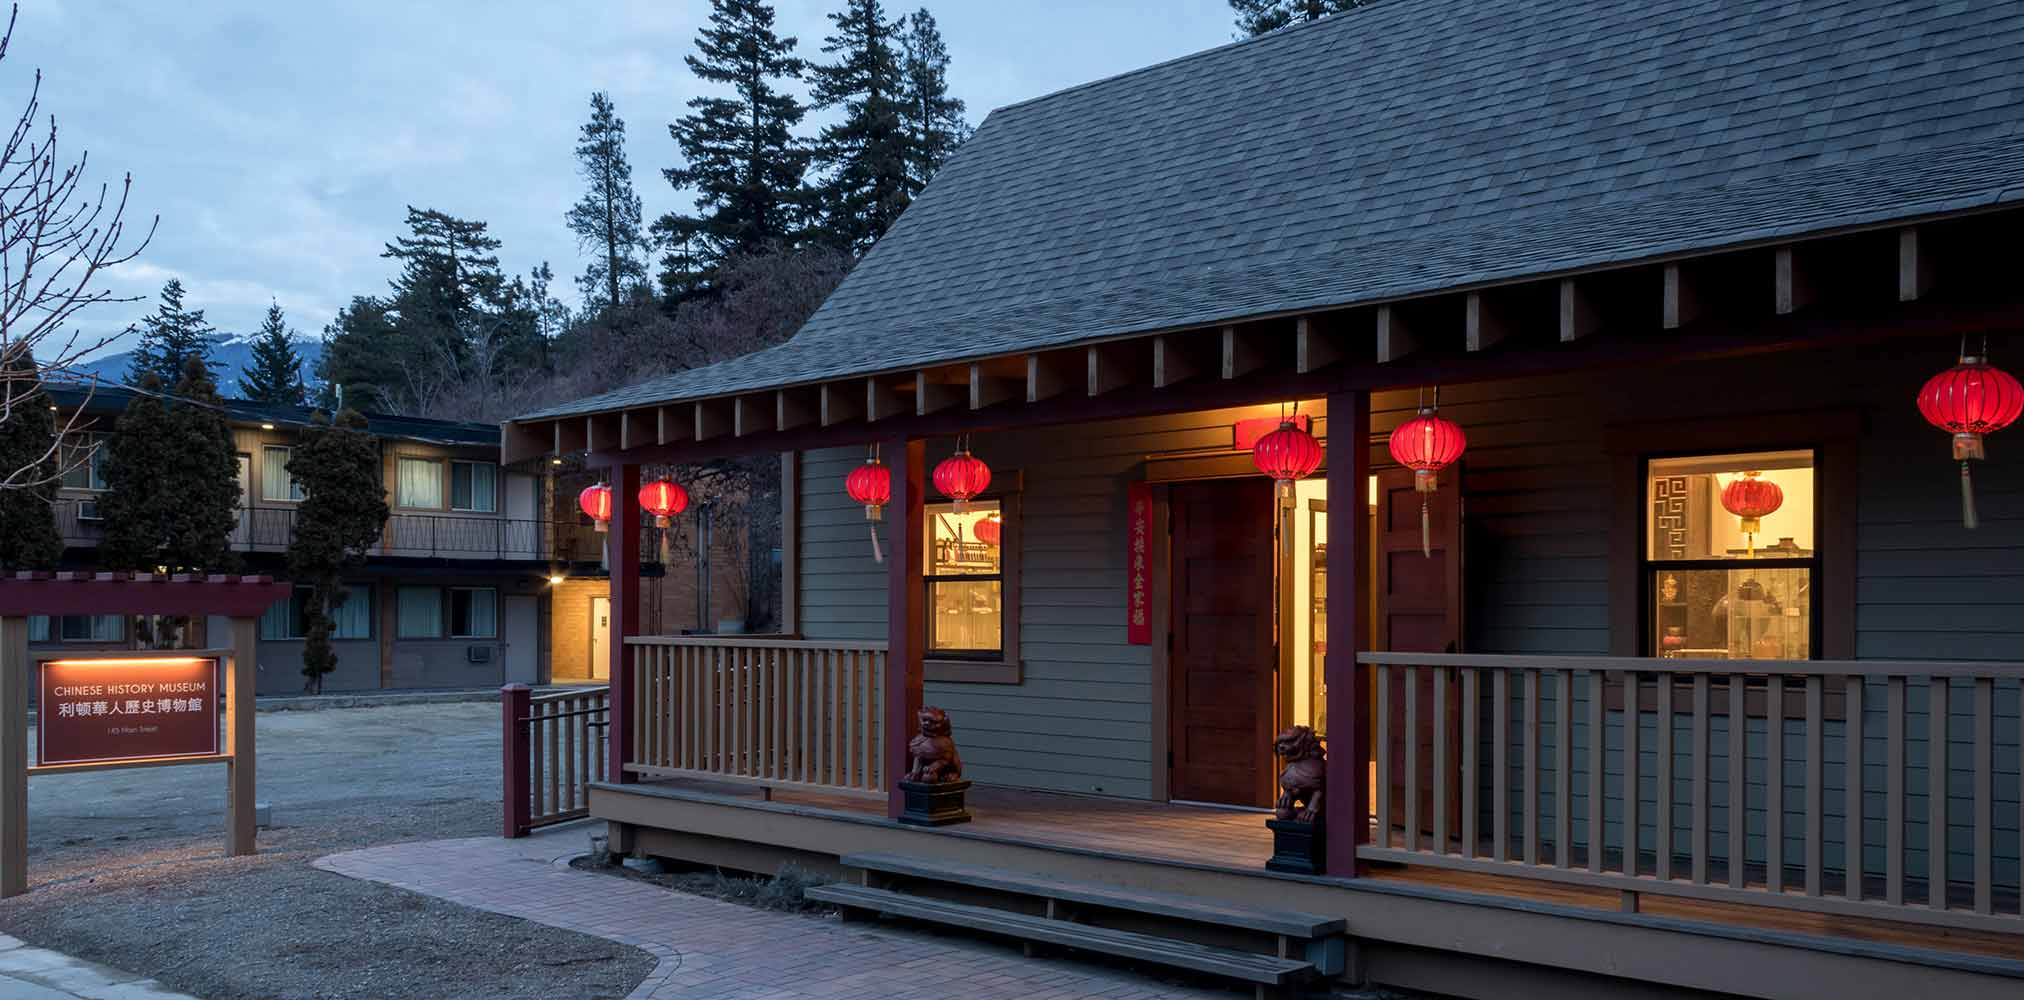 Exterior view of Lytton Chinese History Museum in the evening